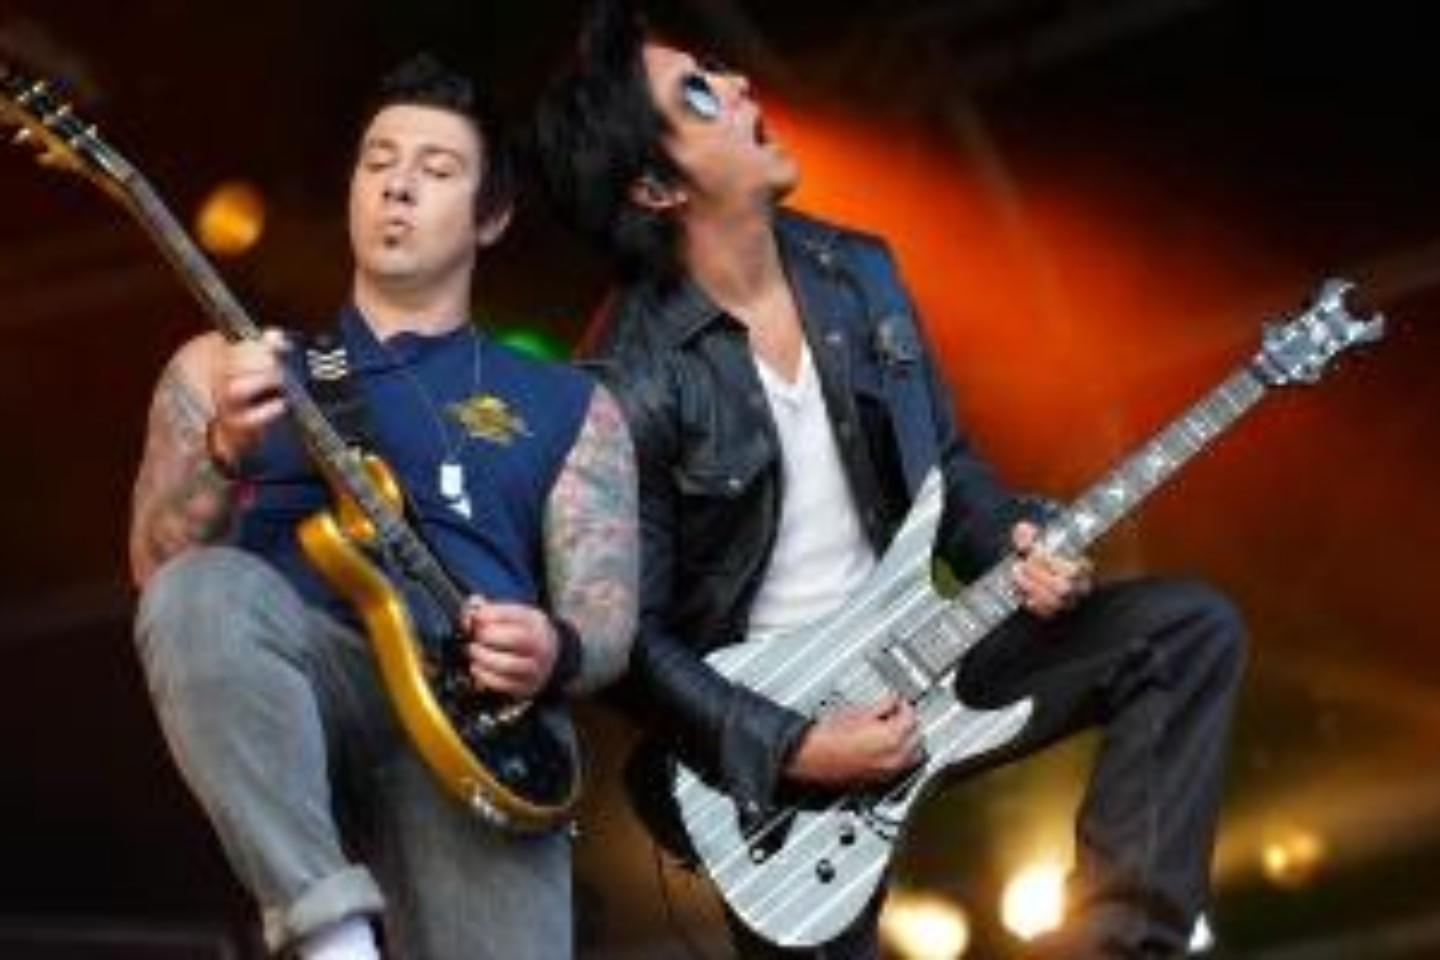 Avenged Sevenfold Tickets Avenged Sevenfold Tour 2018 And Concert